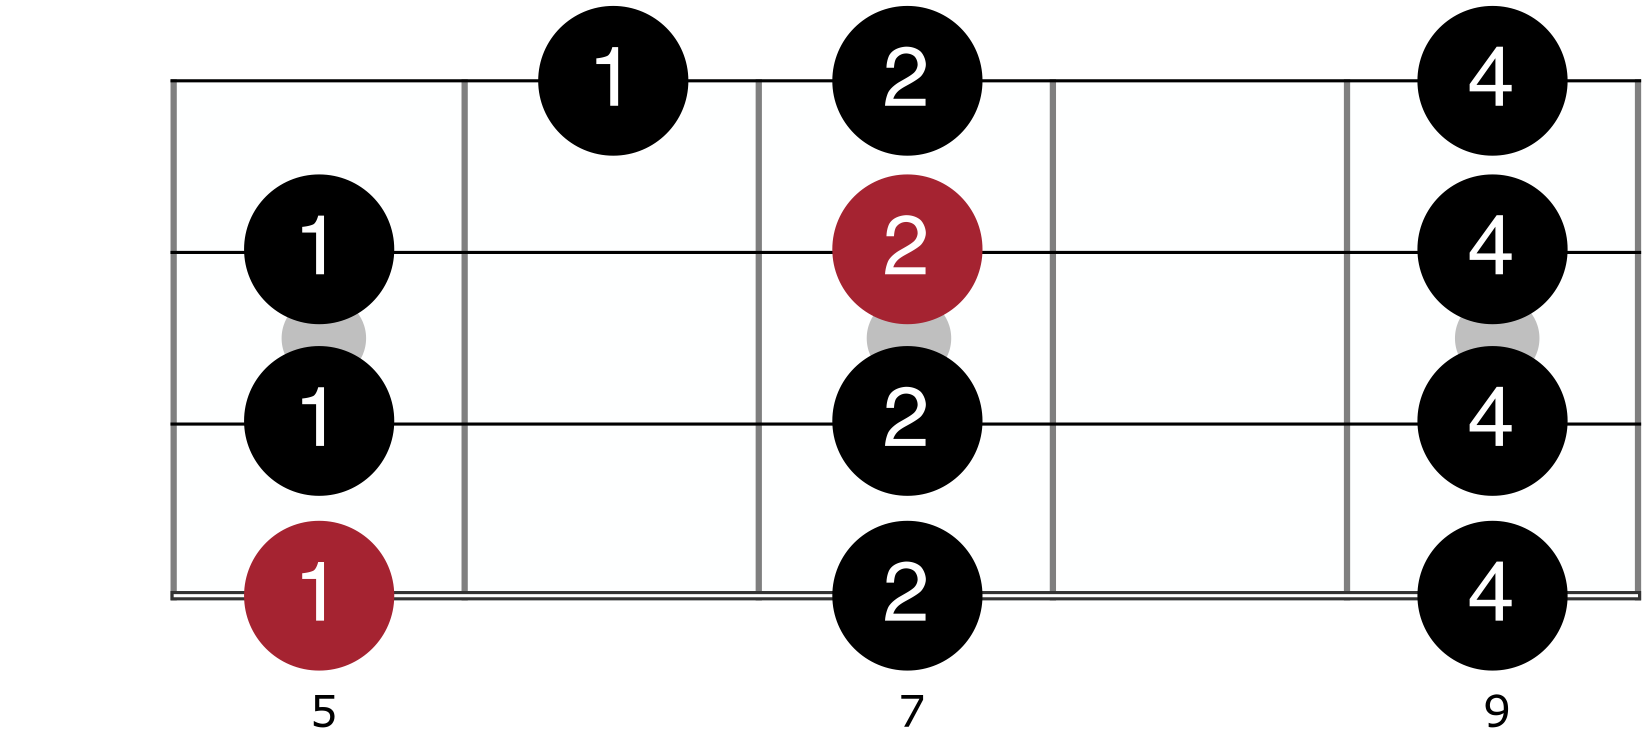 A Mixolydian For Bass Guitar - Starting with firs finger